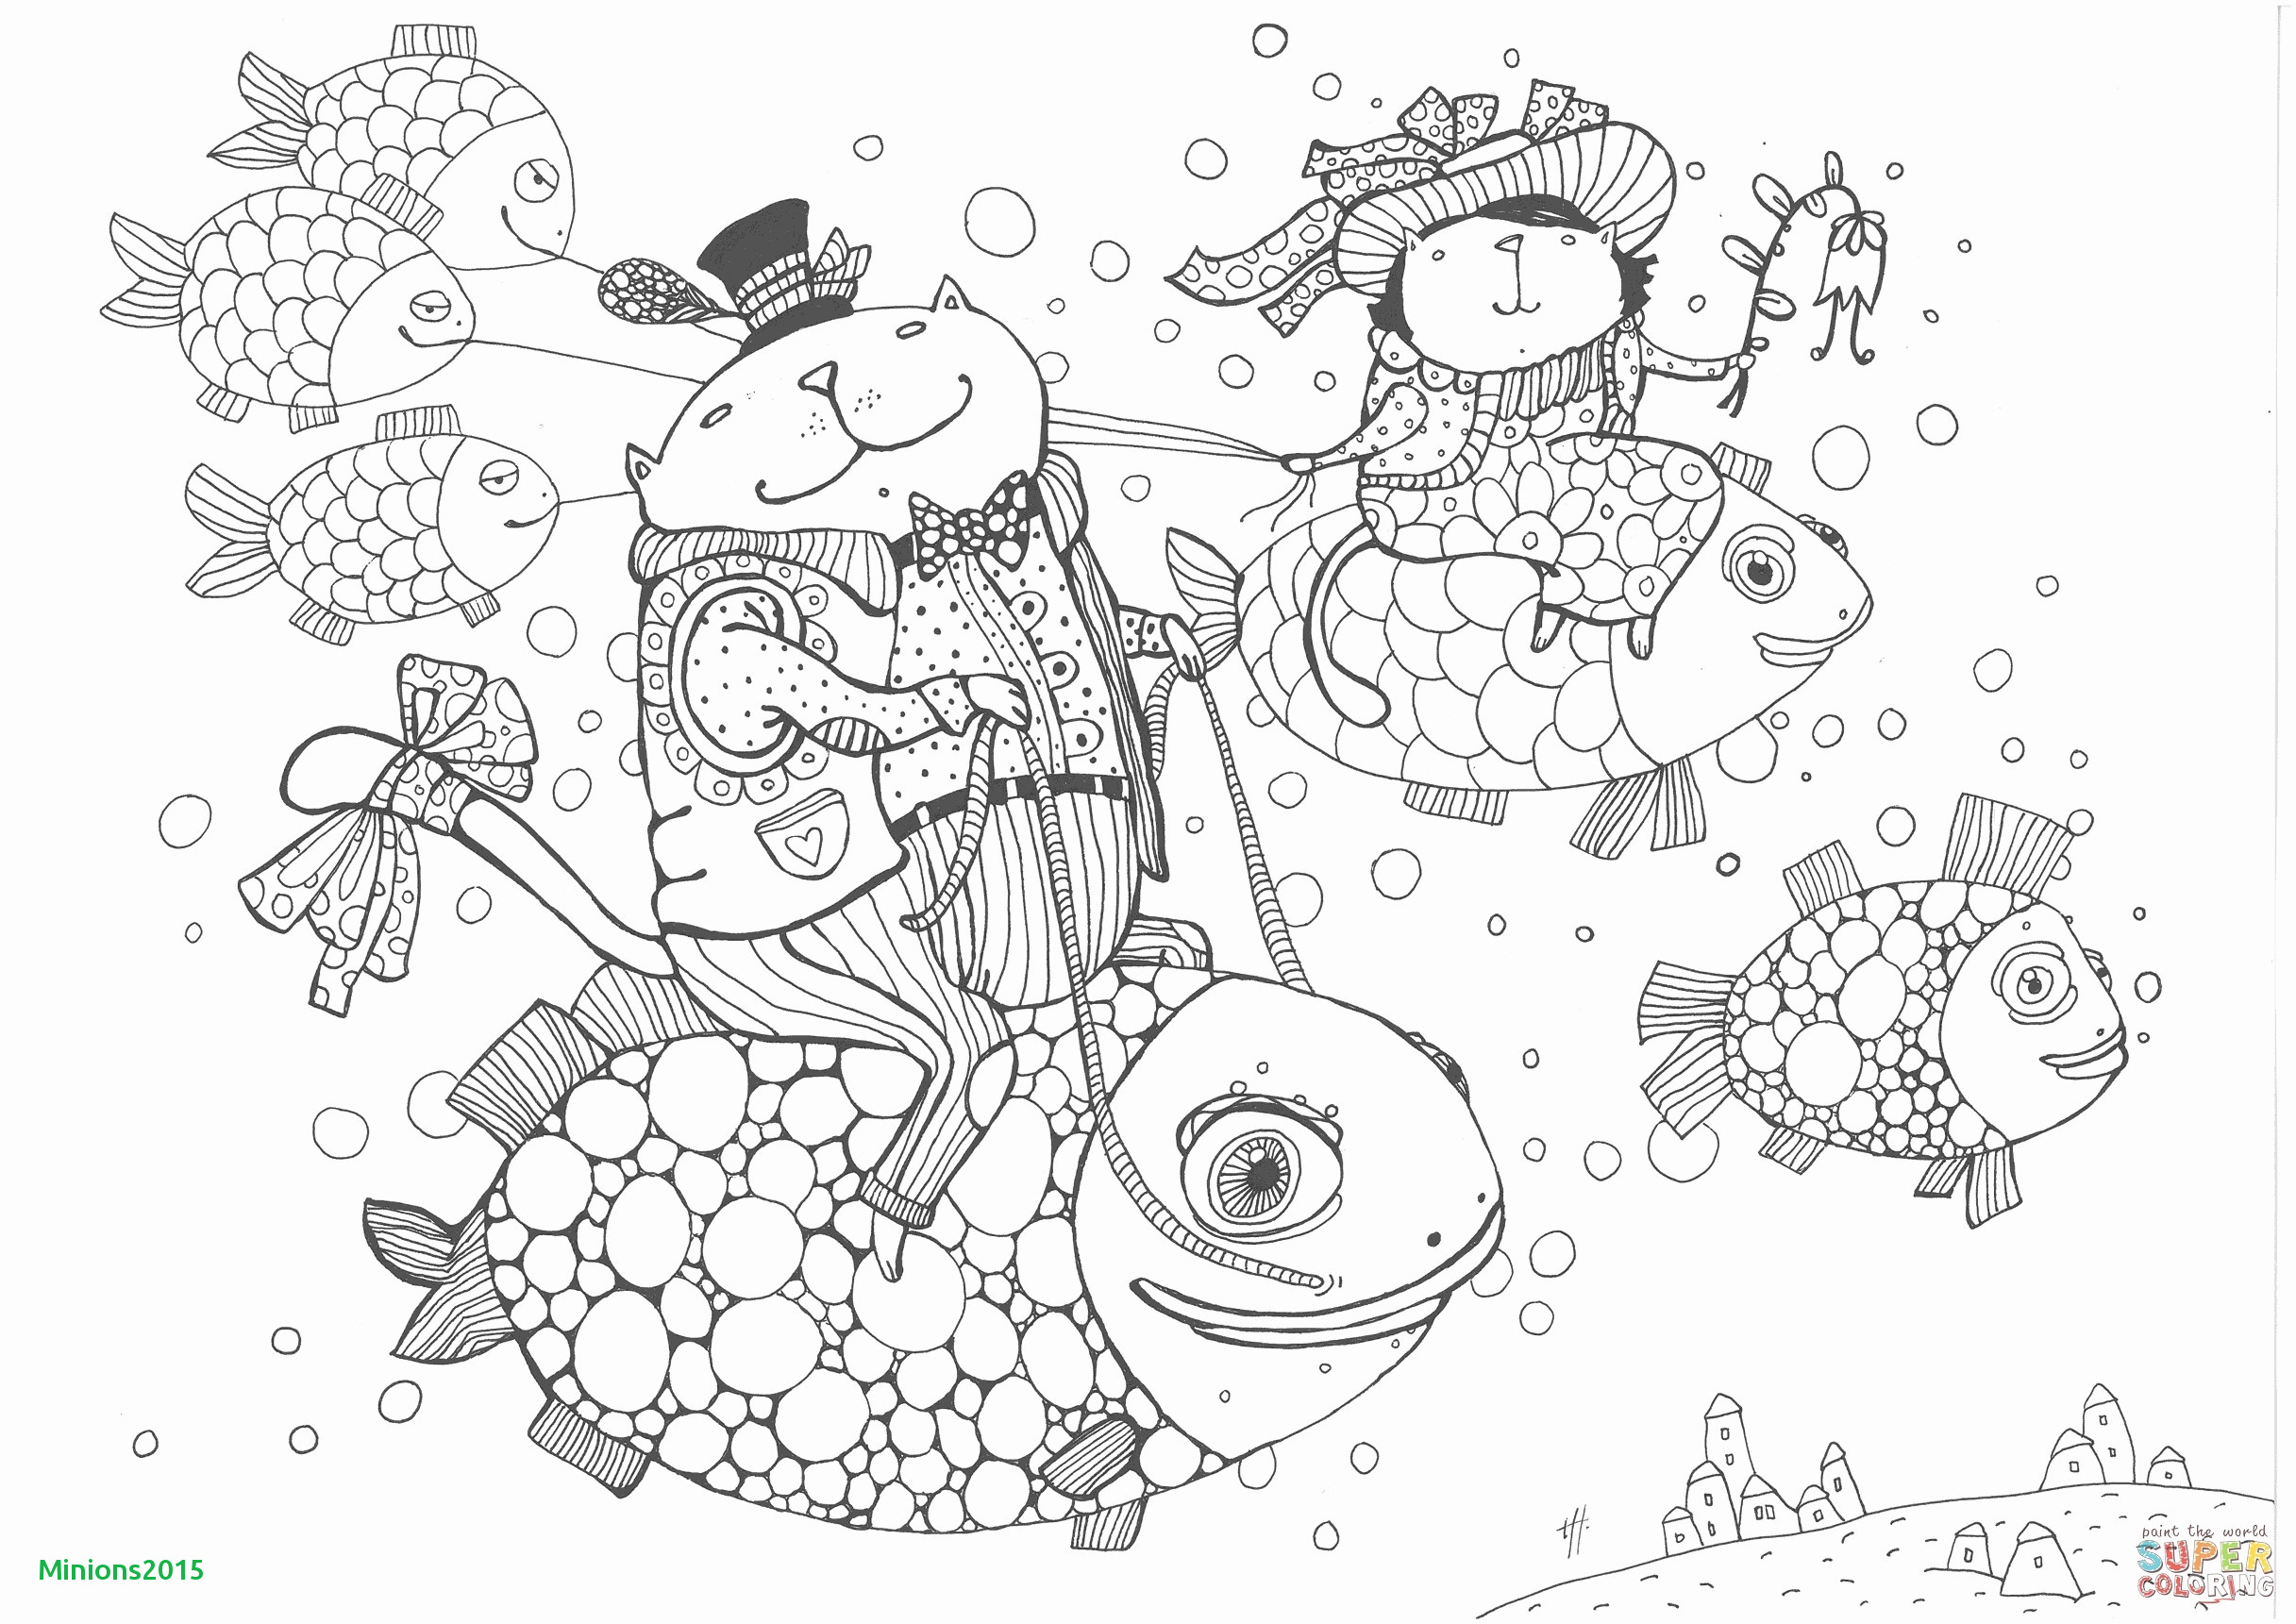 image about Minion Printable Coloring Page called 20 Minion Printable Coloring Webpages Obtain - Coloring Sheets